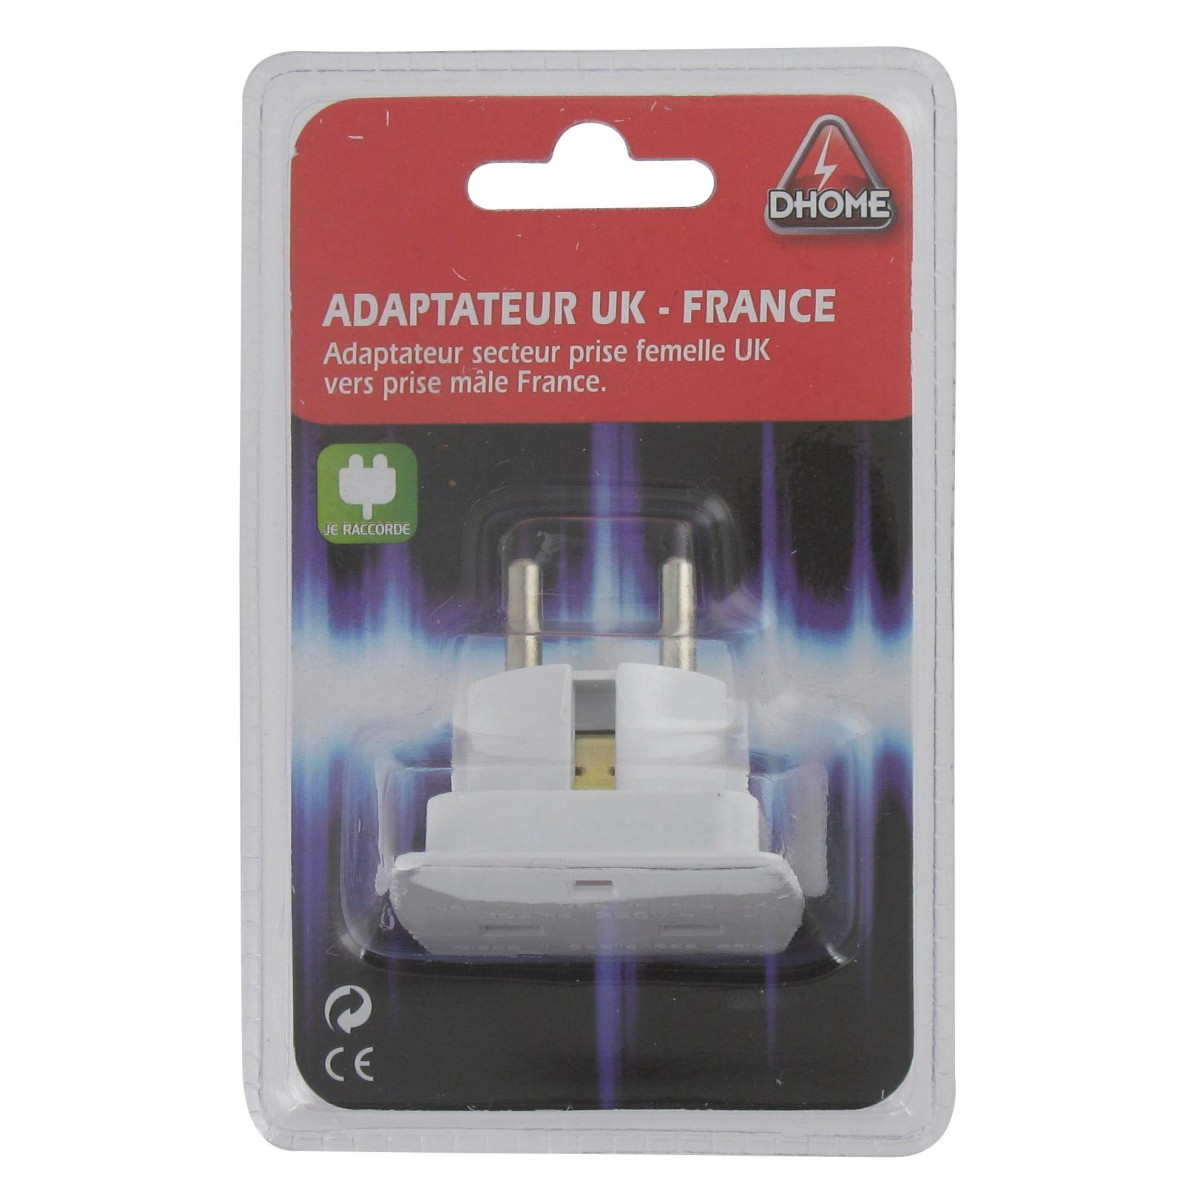 Adaptateur UK - France Dhome